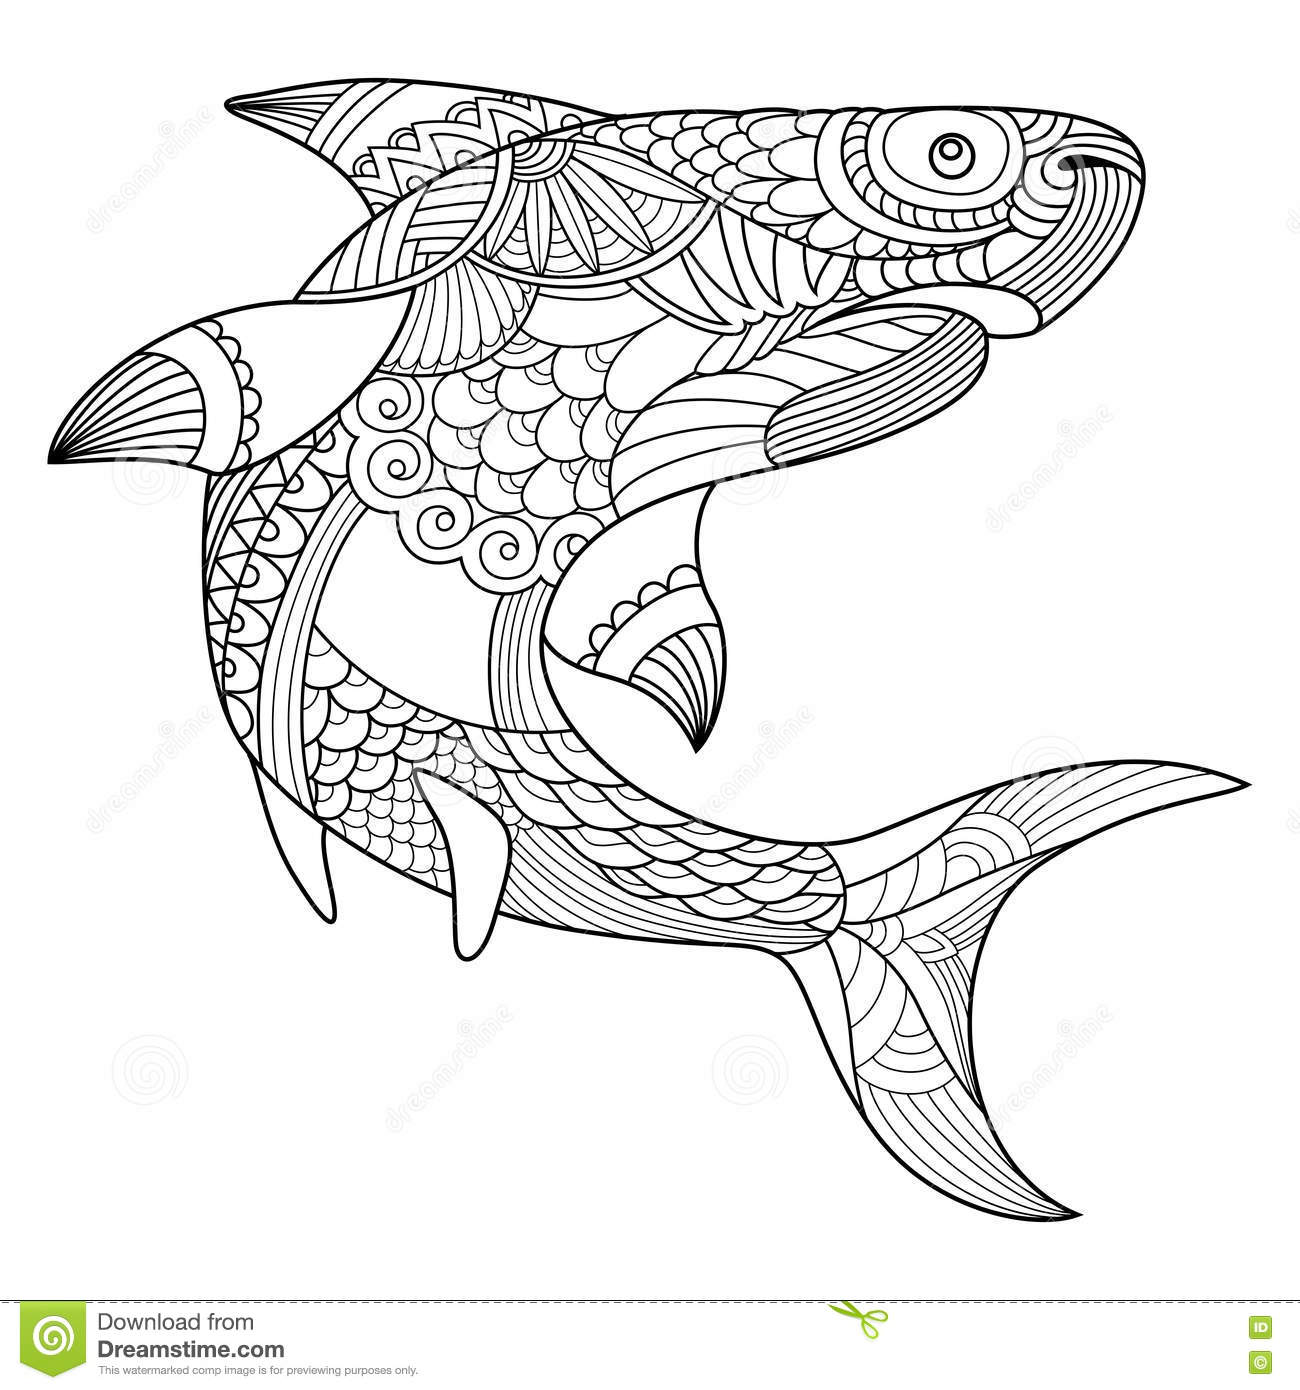 Royalty Free Vector Download Shark Coloring Book